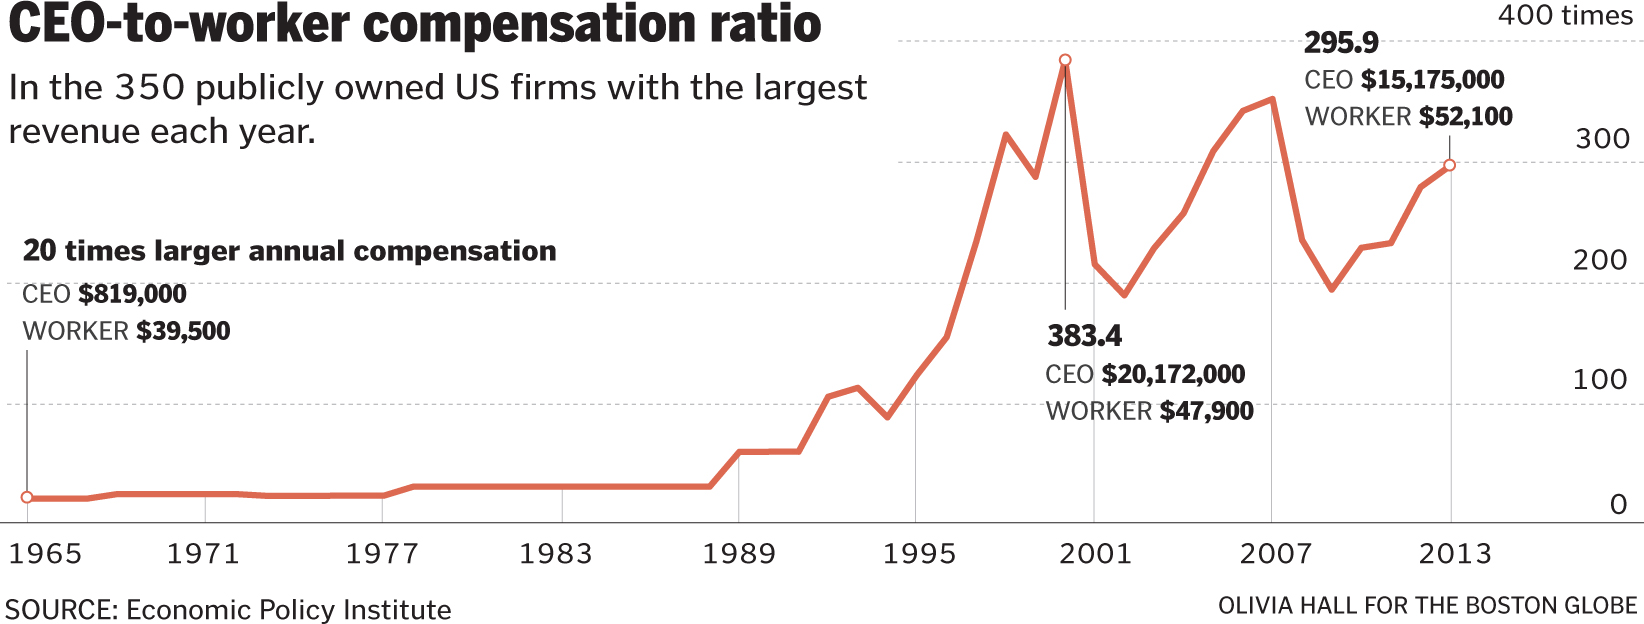 Efforts to regulate CEO pay gain traction - The Boston Globe